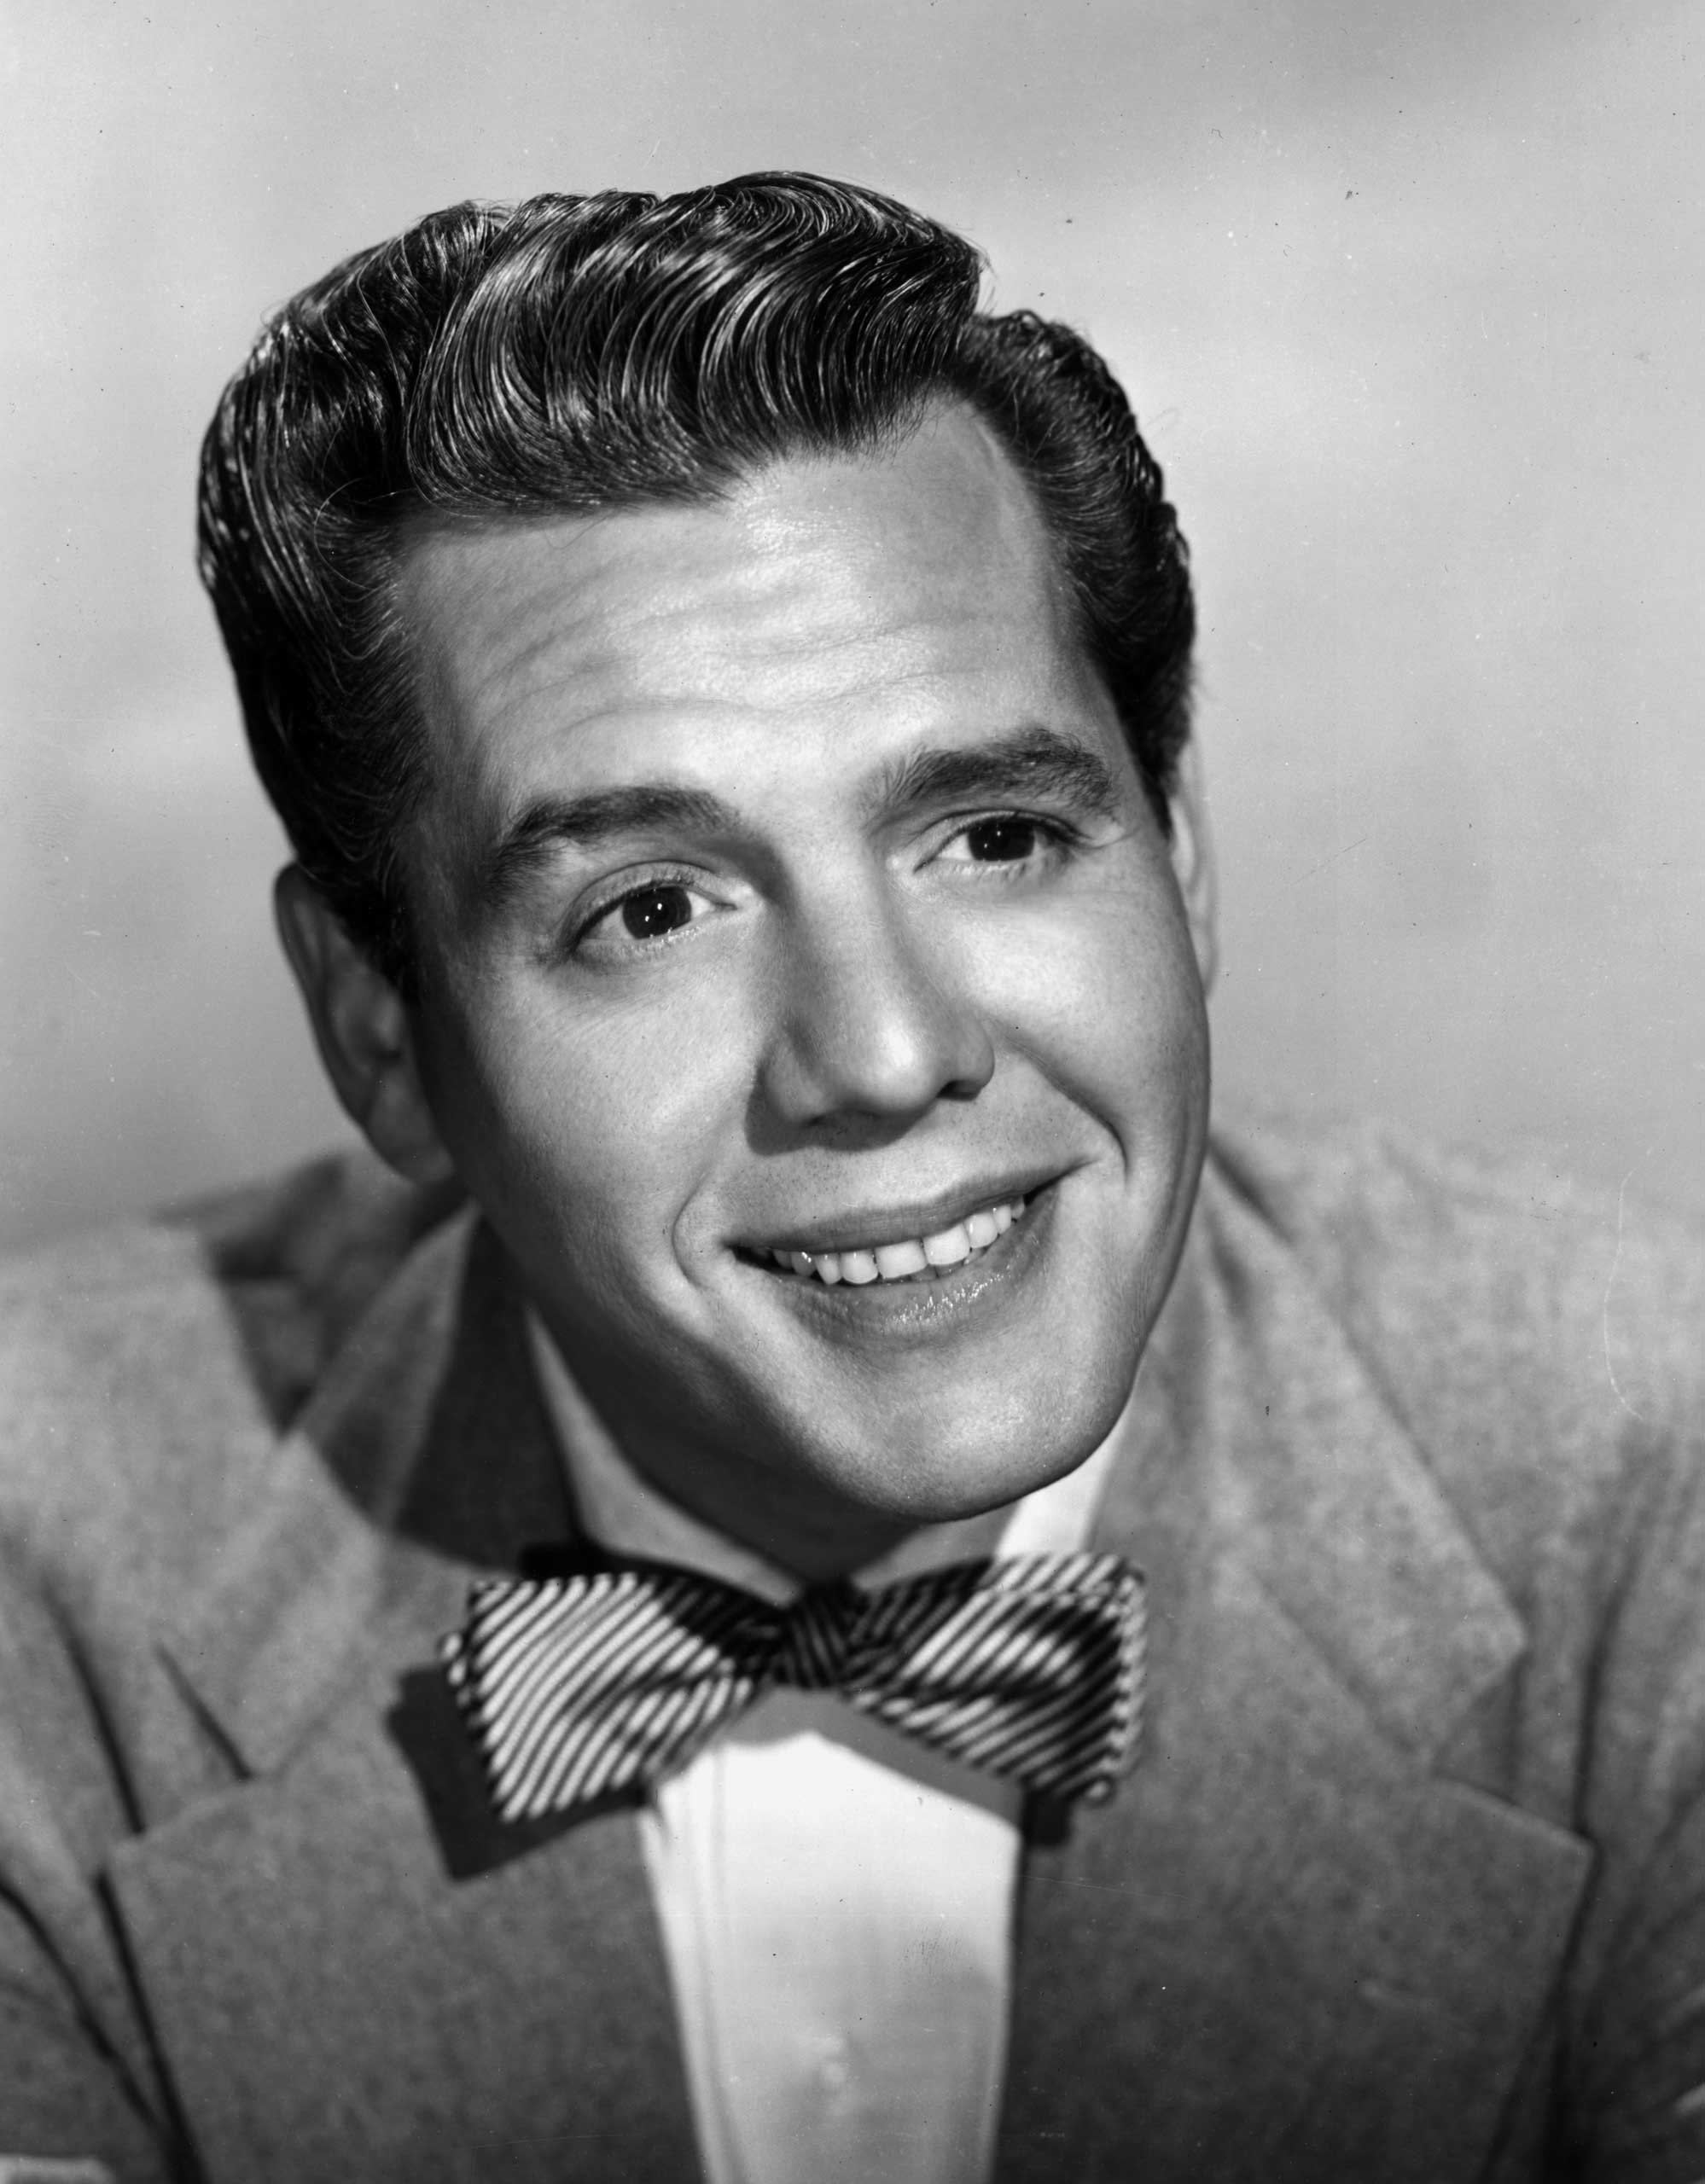 <b>Desi Arnaz</b> The <i>I Love Lucy</i> star was born in Cuba in 1917. Arnaz's Father was a Cuban politician, and his grandmother an executive at Bacardi.